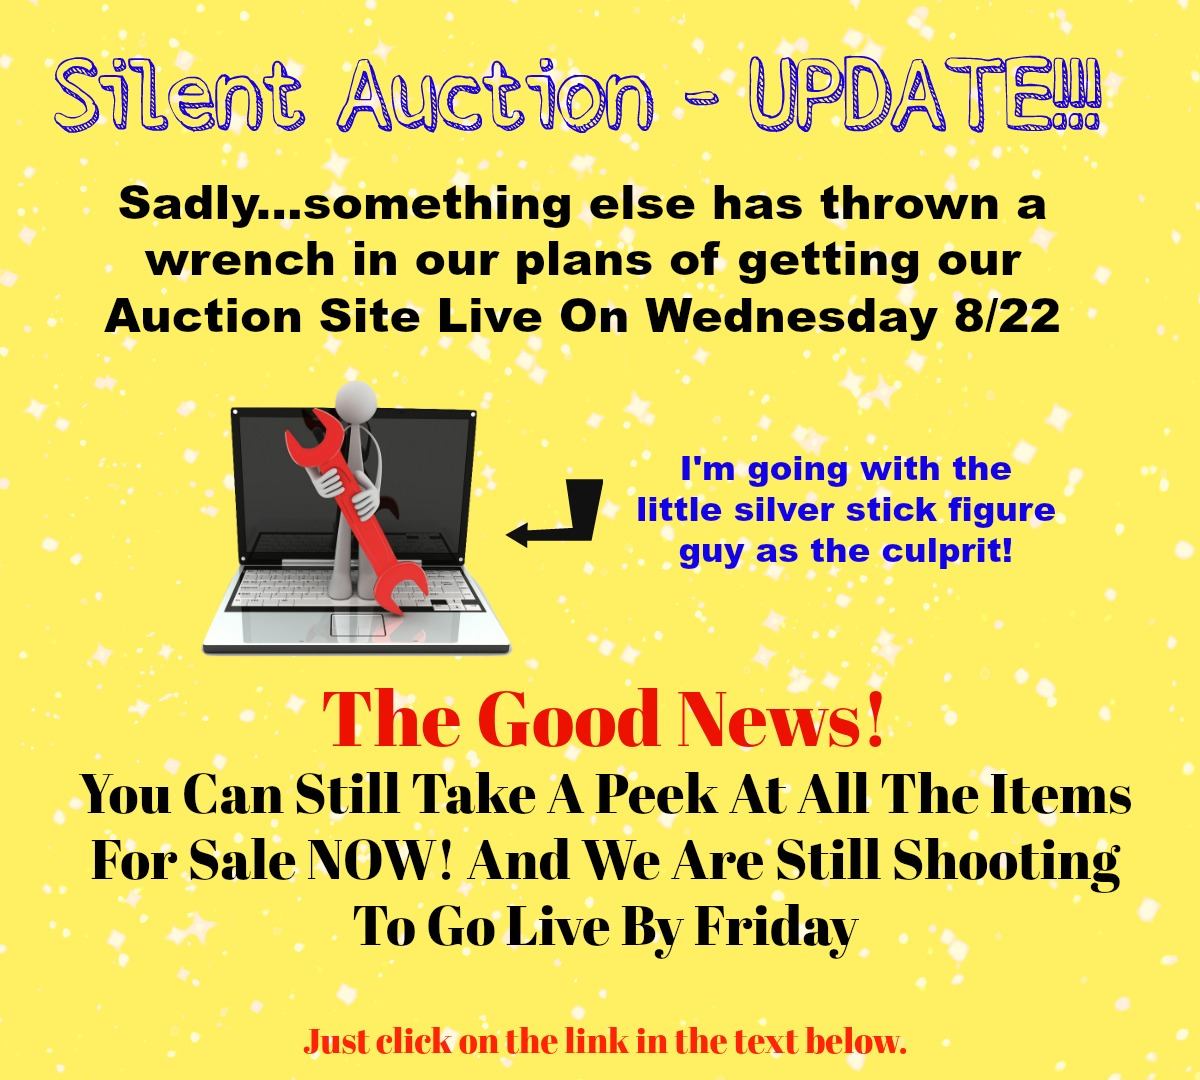 Silent Auction Update 2